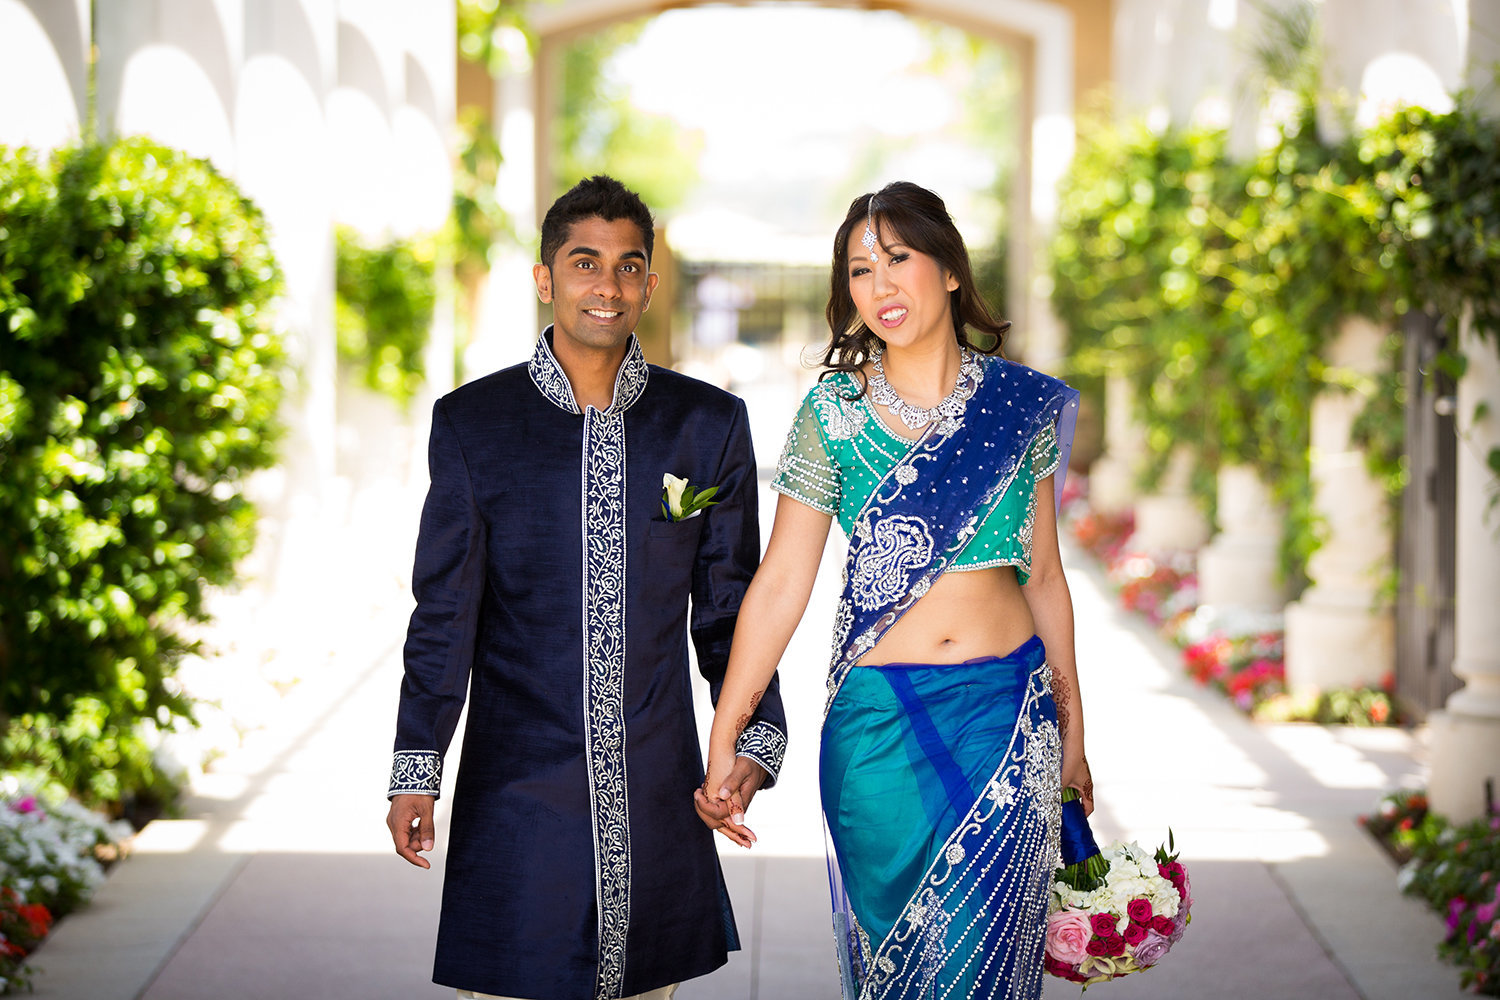 Bright Blue and Green Sari at a Hindu Wedding